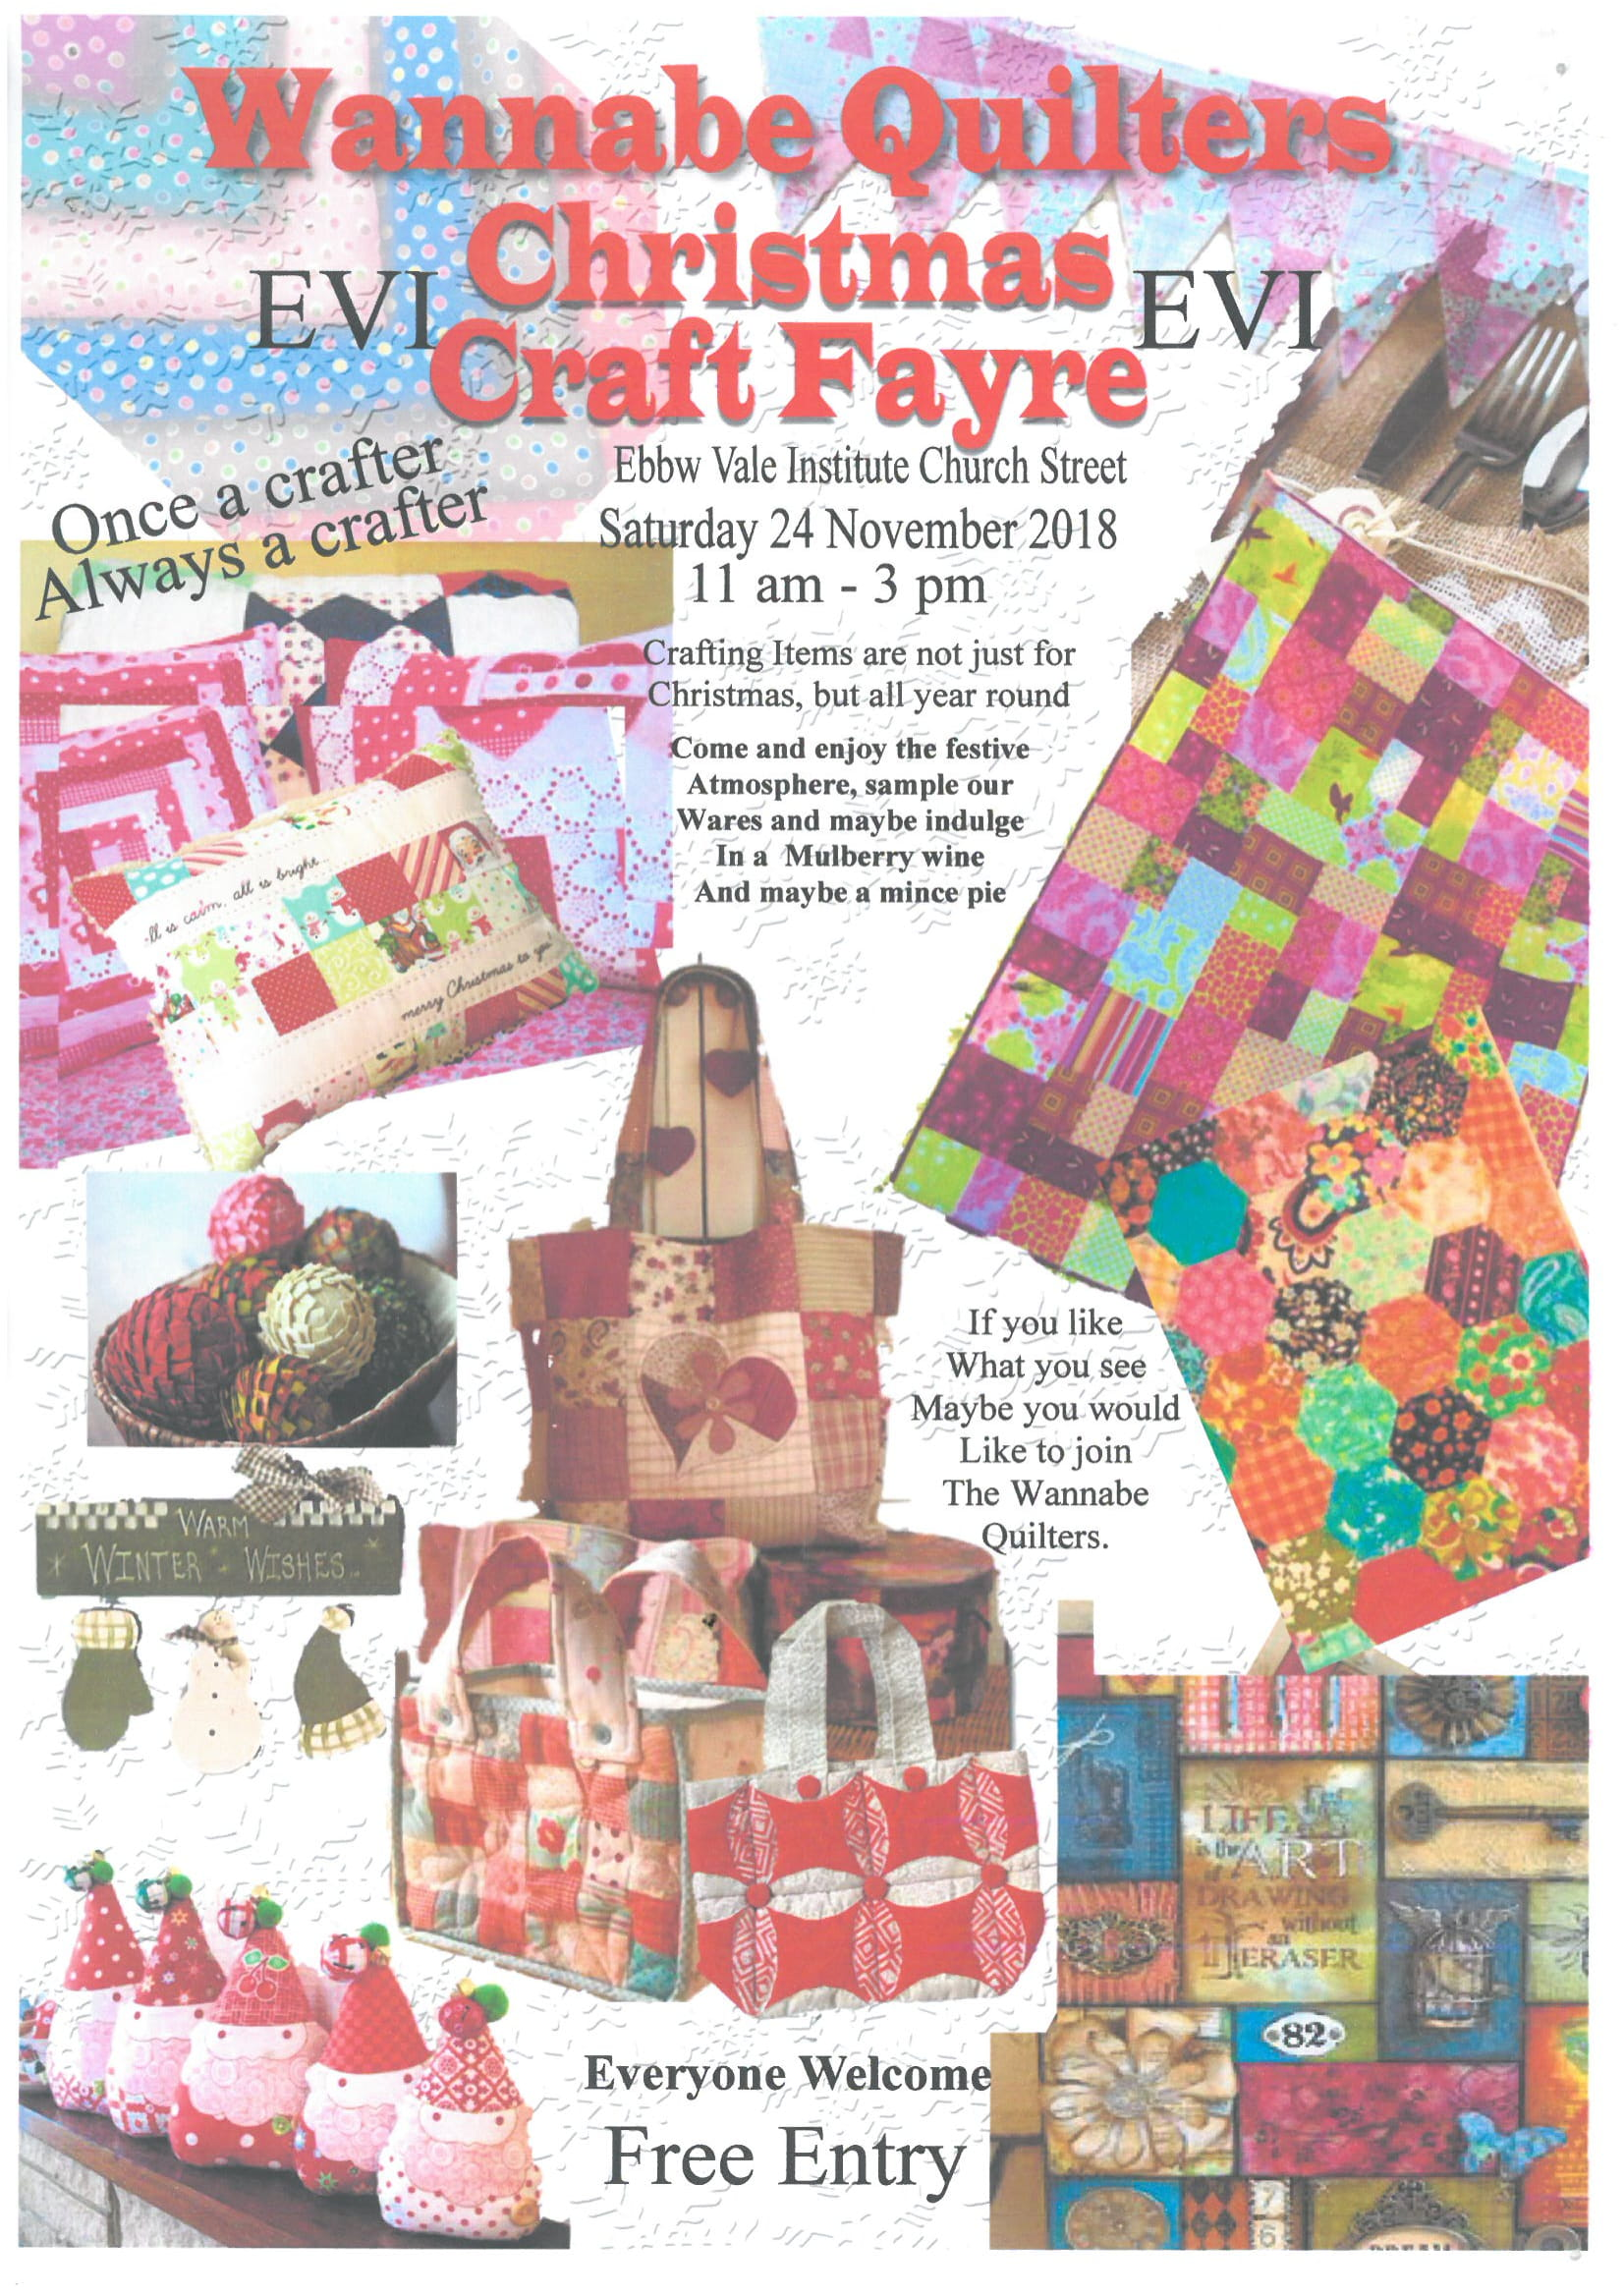 Wannabe Quilters Christmas Fayre EVI